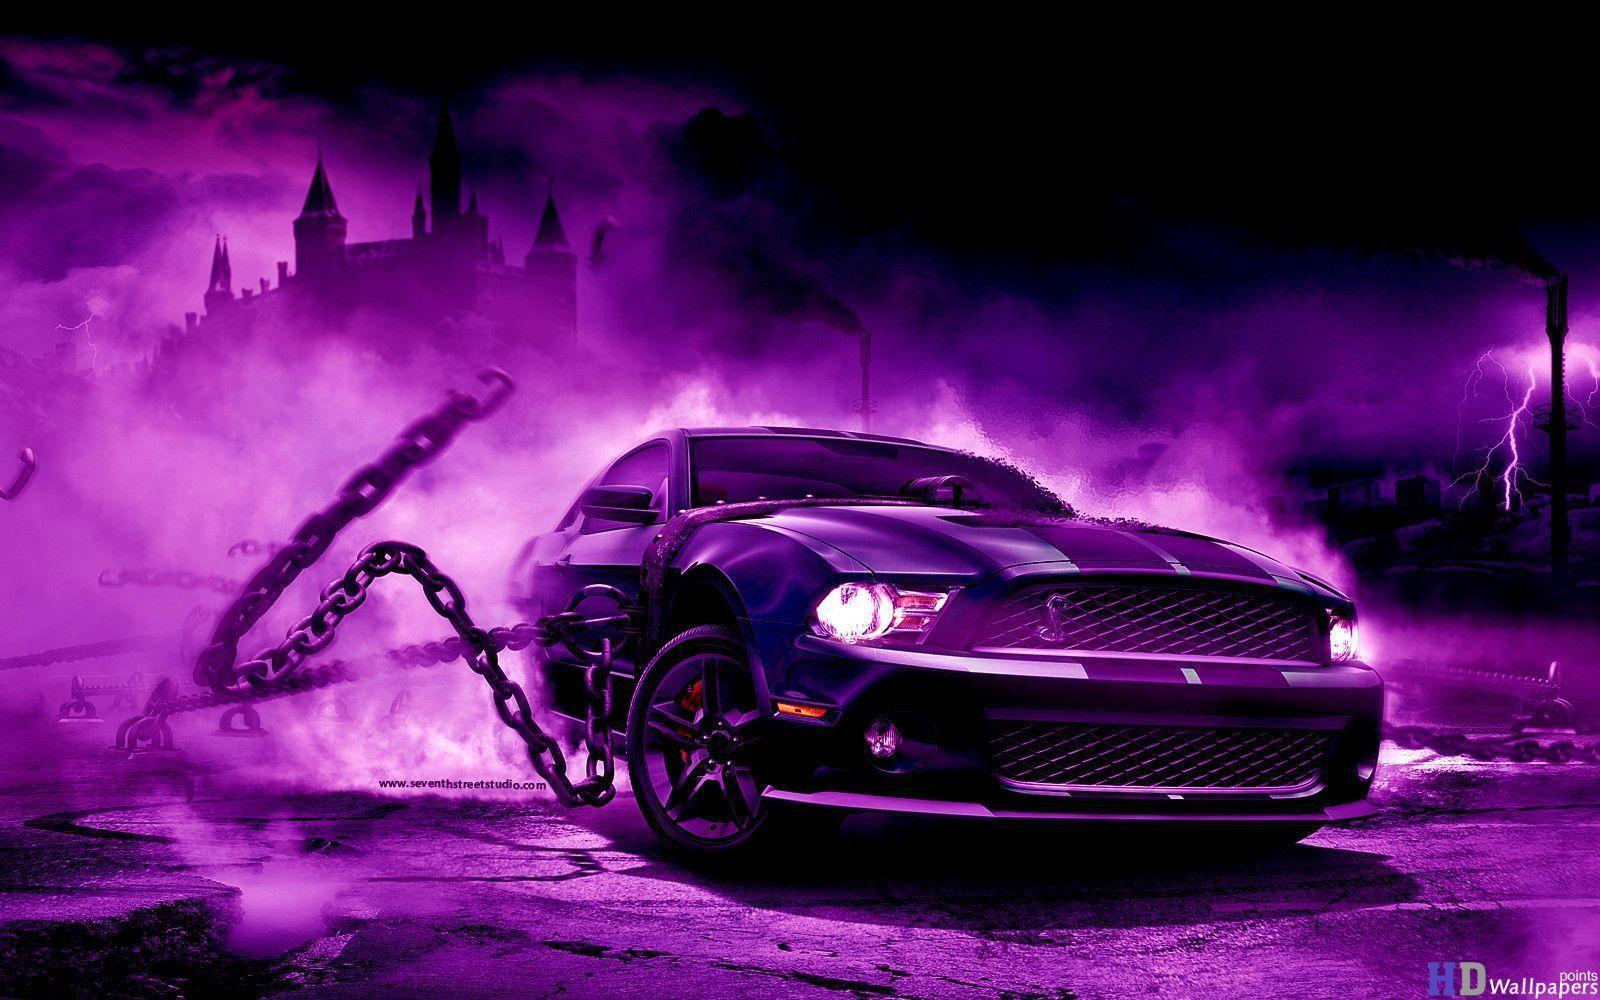 cool car wallpaper hd - photo #7